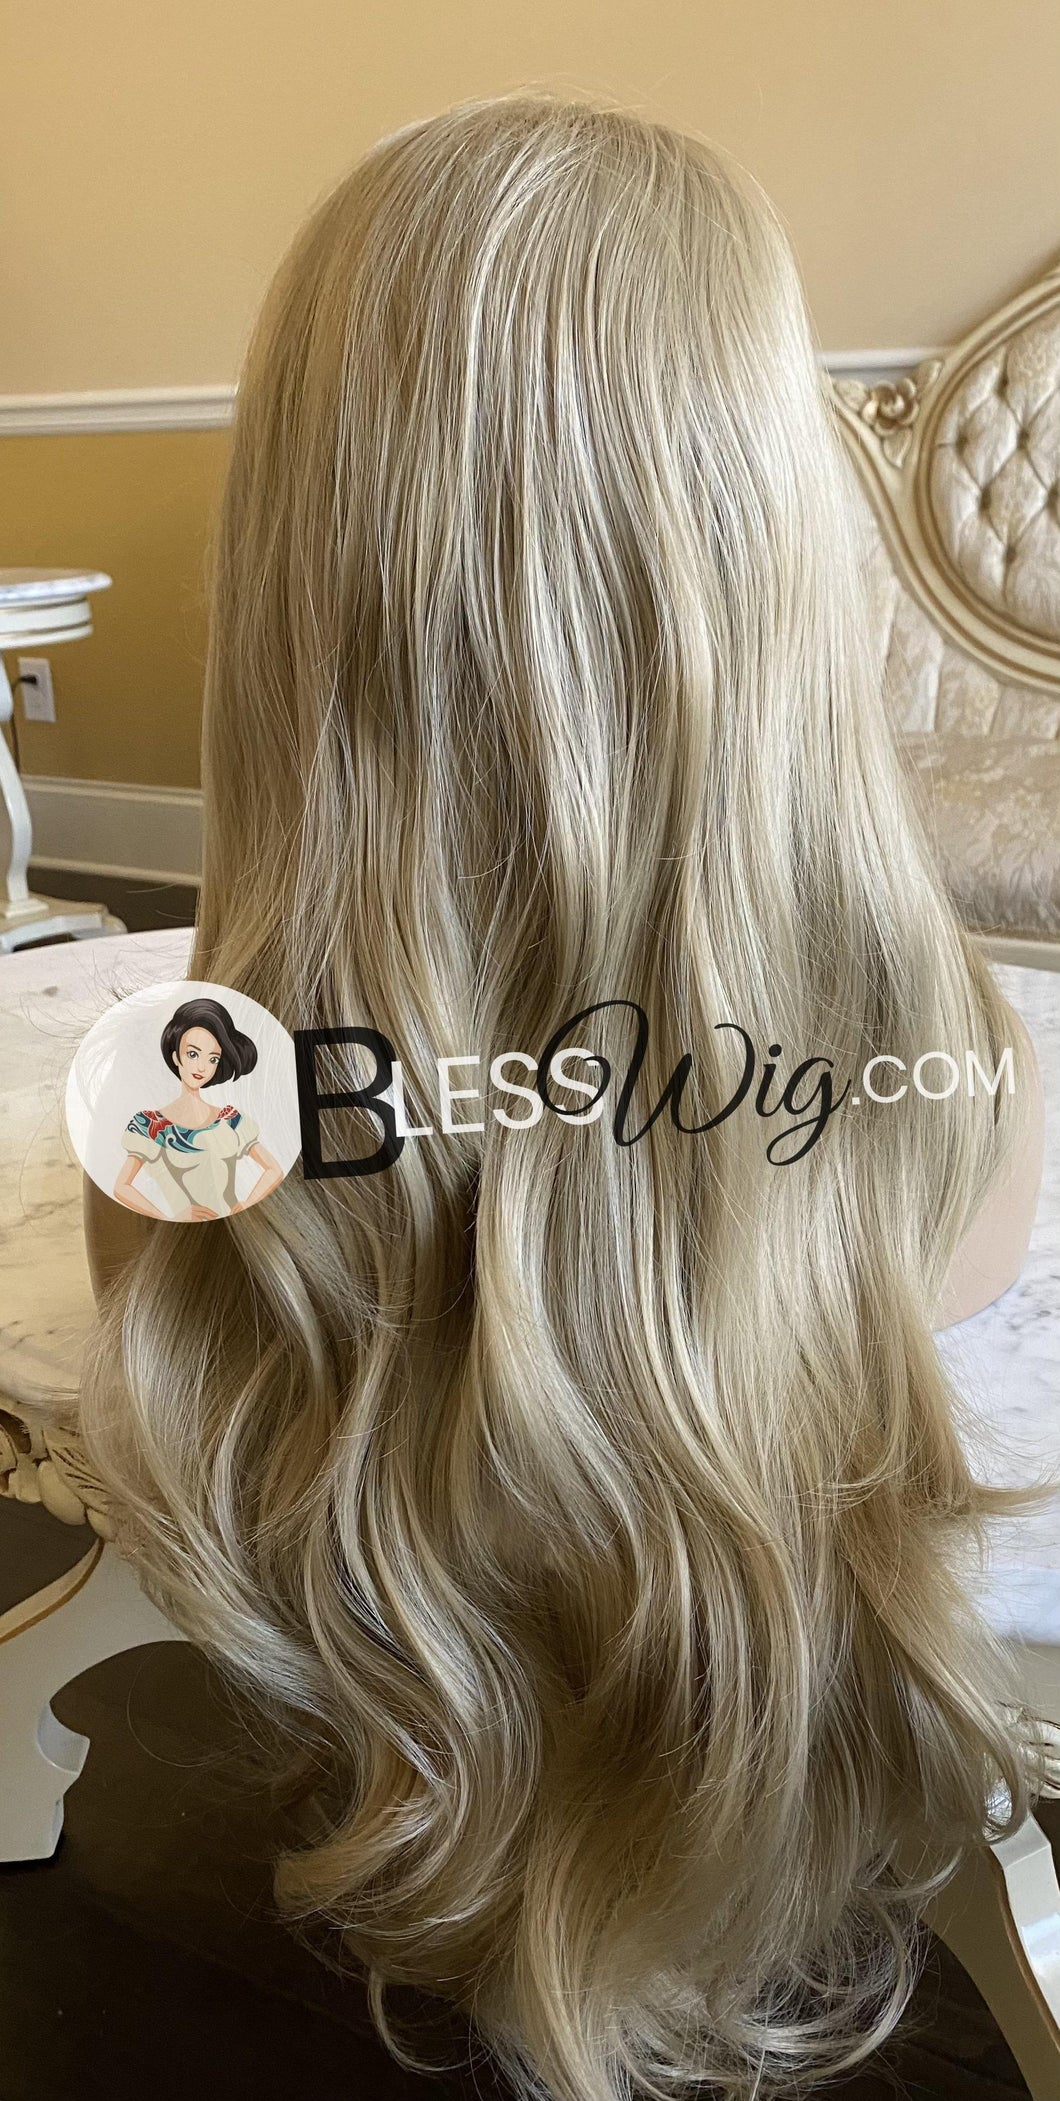 Blesswigs - Wavy ash Blonde Lace Front wig. European Human hair blend /Best Alopecia and cancer wigs